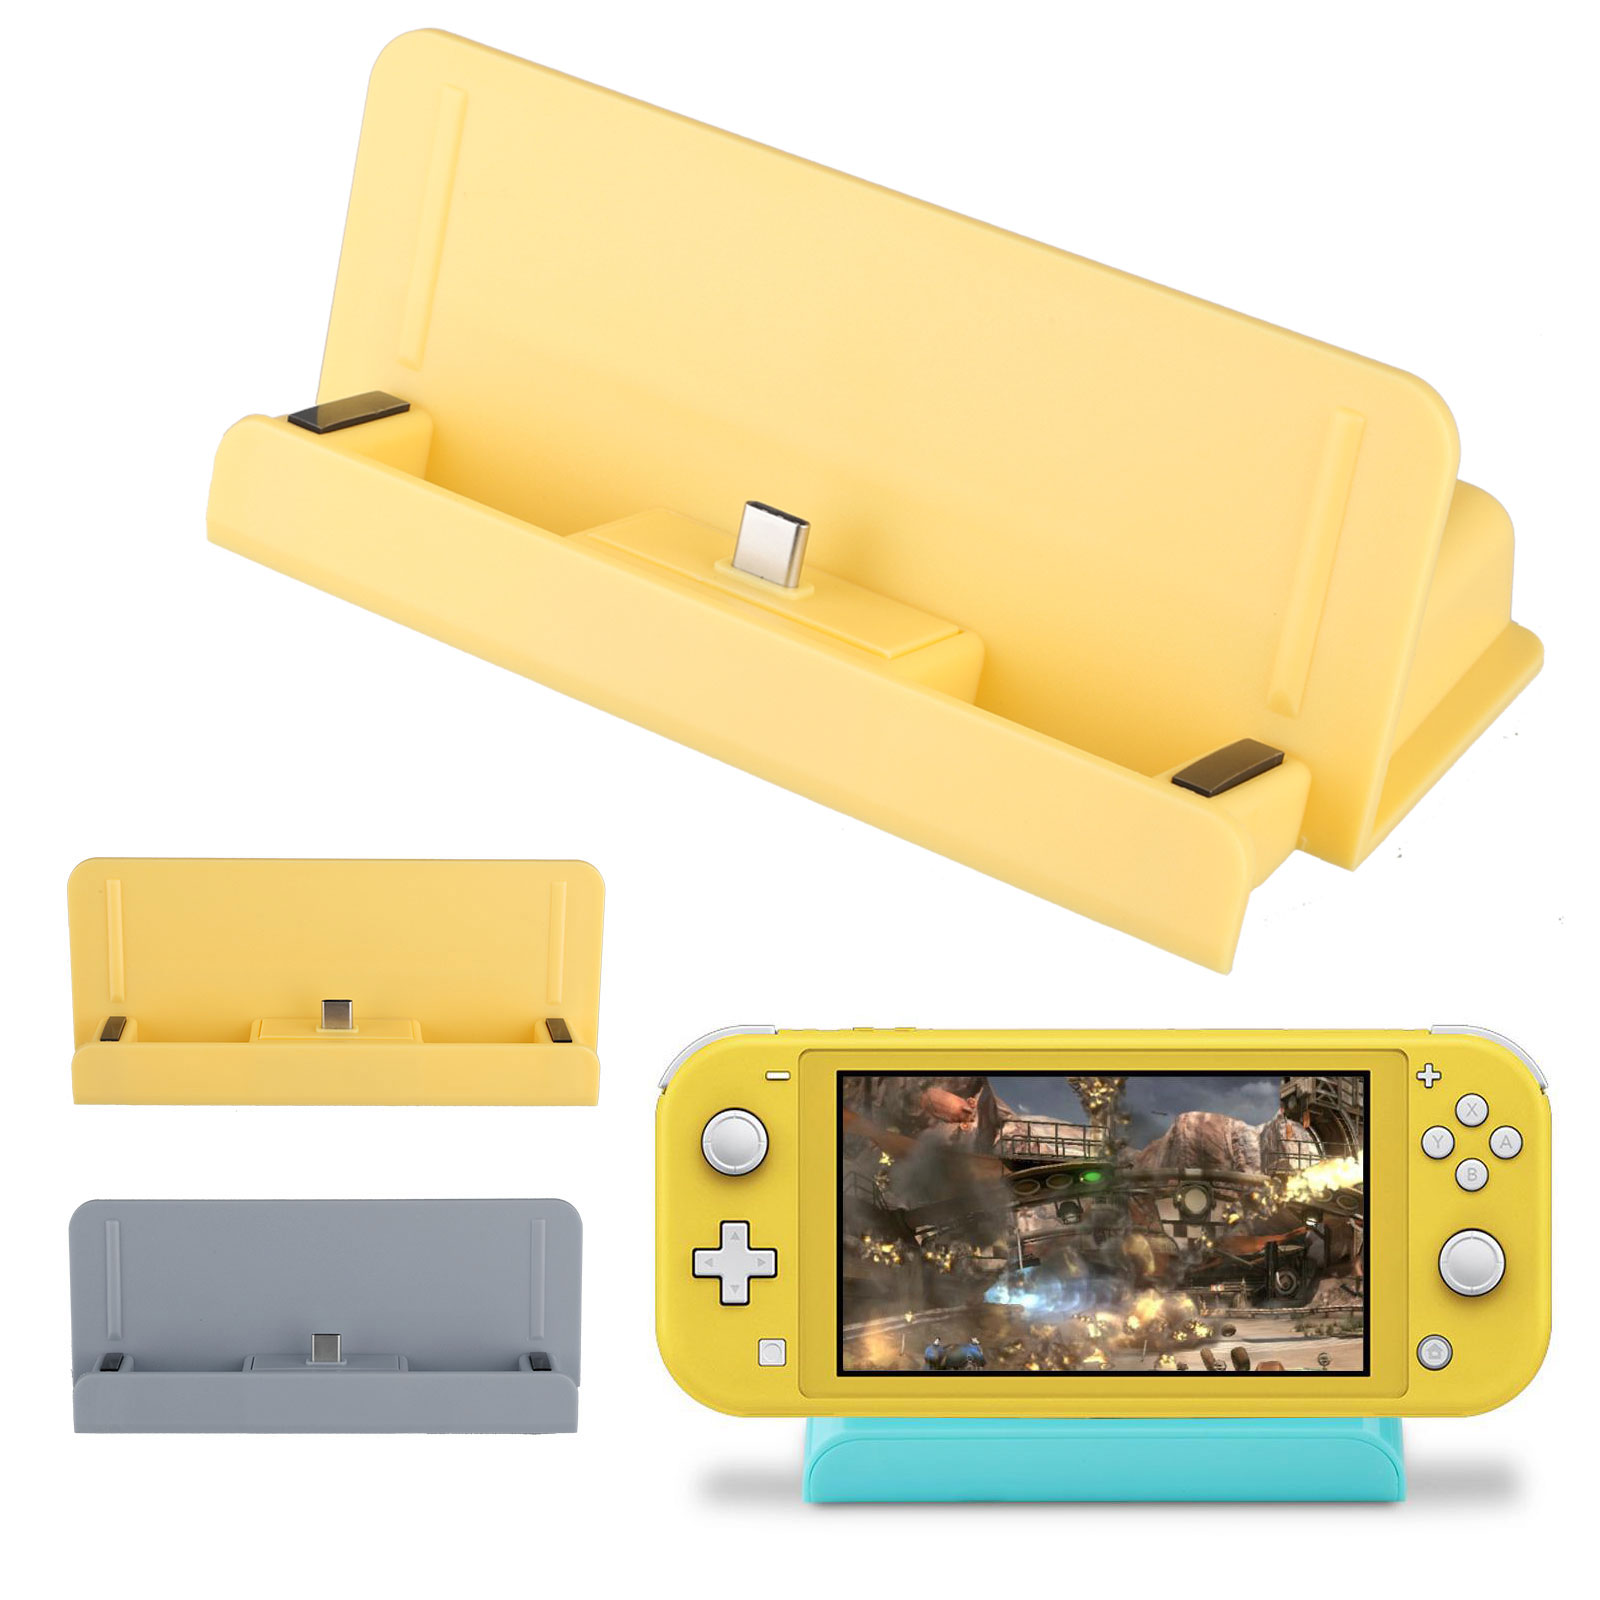 TSV Controller Charger Charging Dock Station Stand Replacement with Charging Port Fit for Nintendo Switch Lite Console Charging & Playing, Portable Charger Dock with USB Type C Cable Cord for Travel